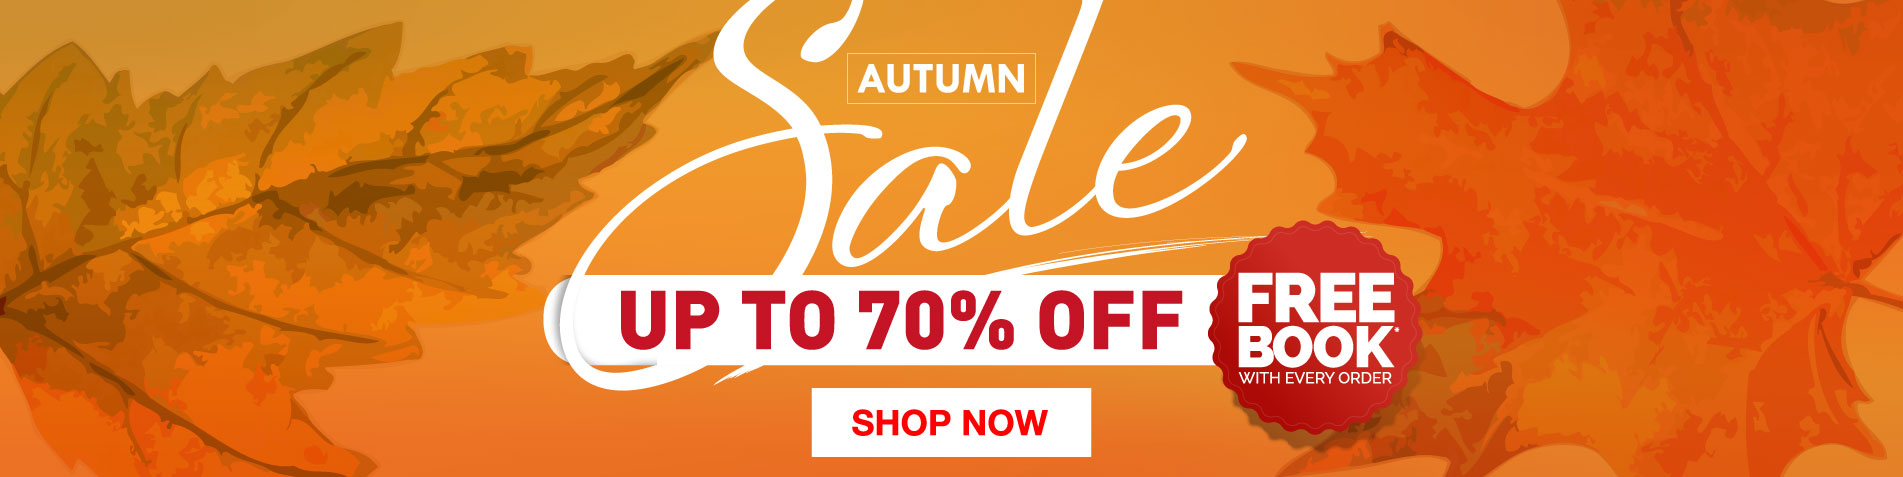 Autumn Sale - up to 70% off